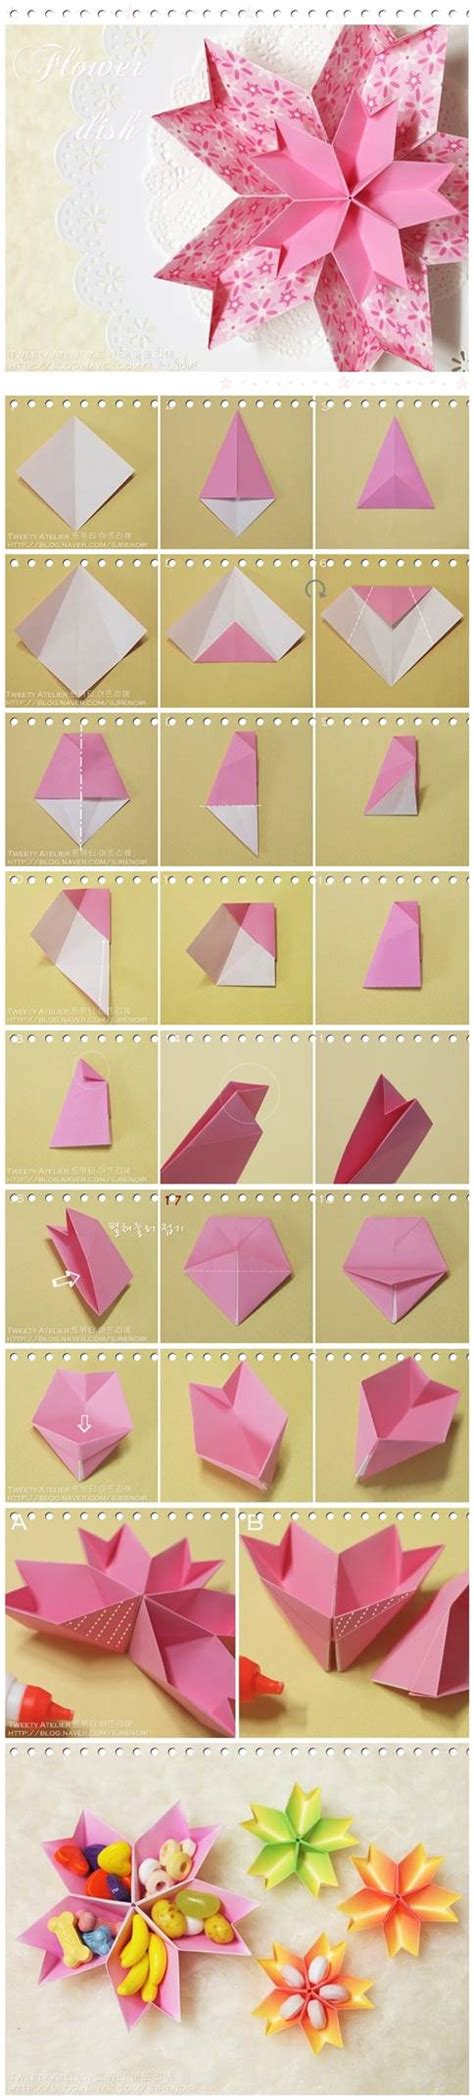 How To Make Paper Flowers Steps - how to make origami flowers step by step breeds picture